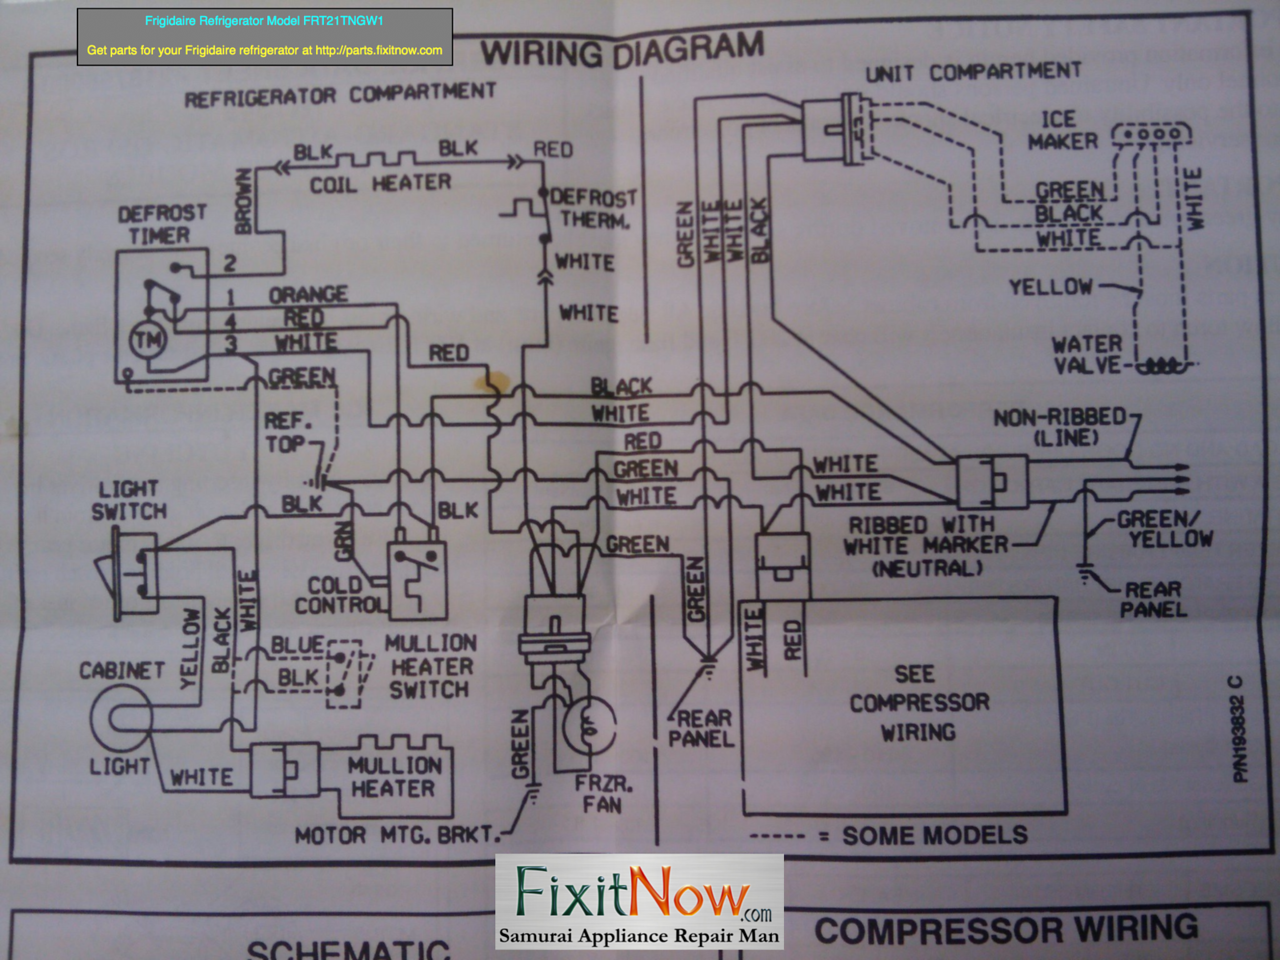 4927632513_66c123c922_o X2 appliantology photo keywords refrigerator samsung refrigerator wiring diagram at soozxer.org